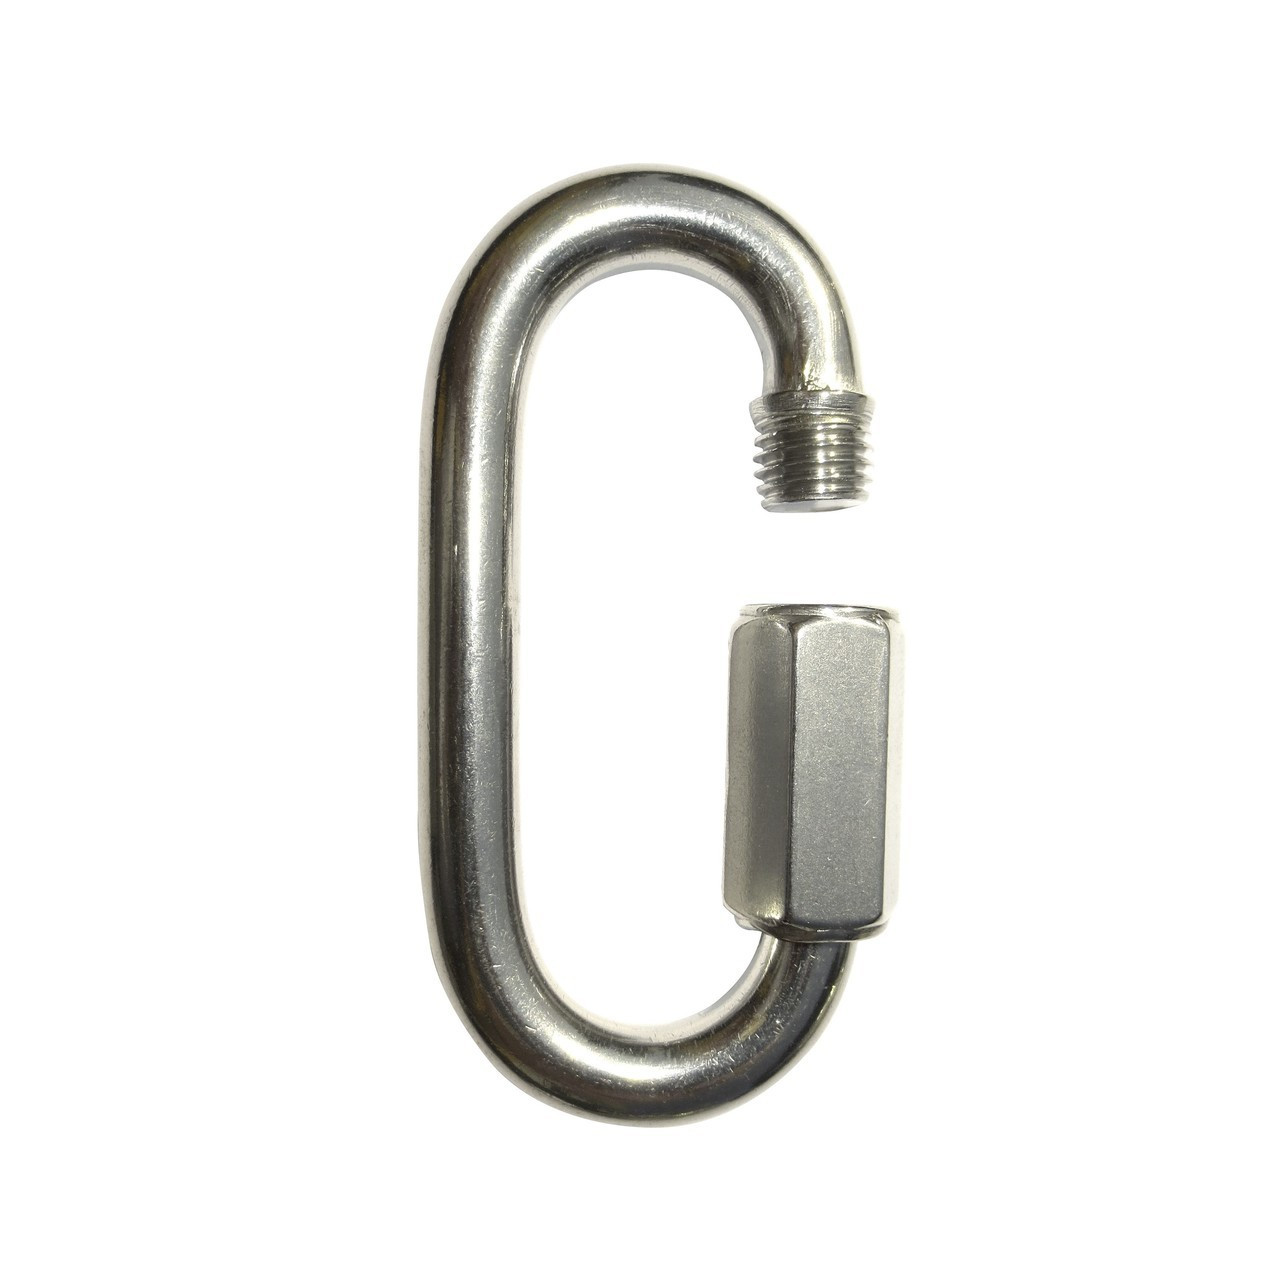 Quick Links - 6.0mm - Stainless Steel